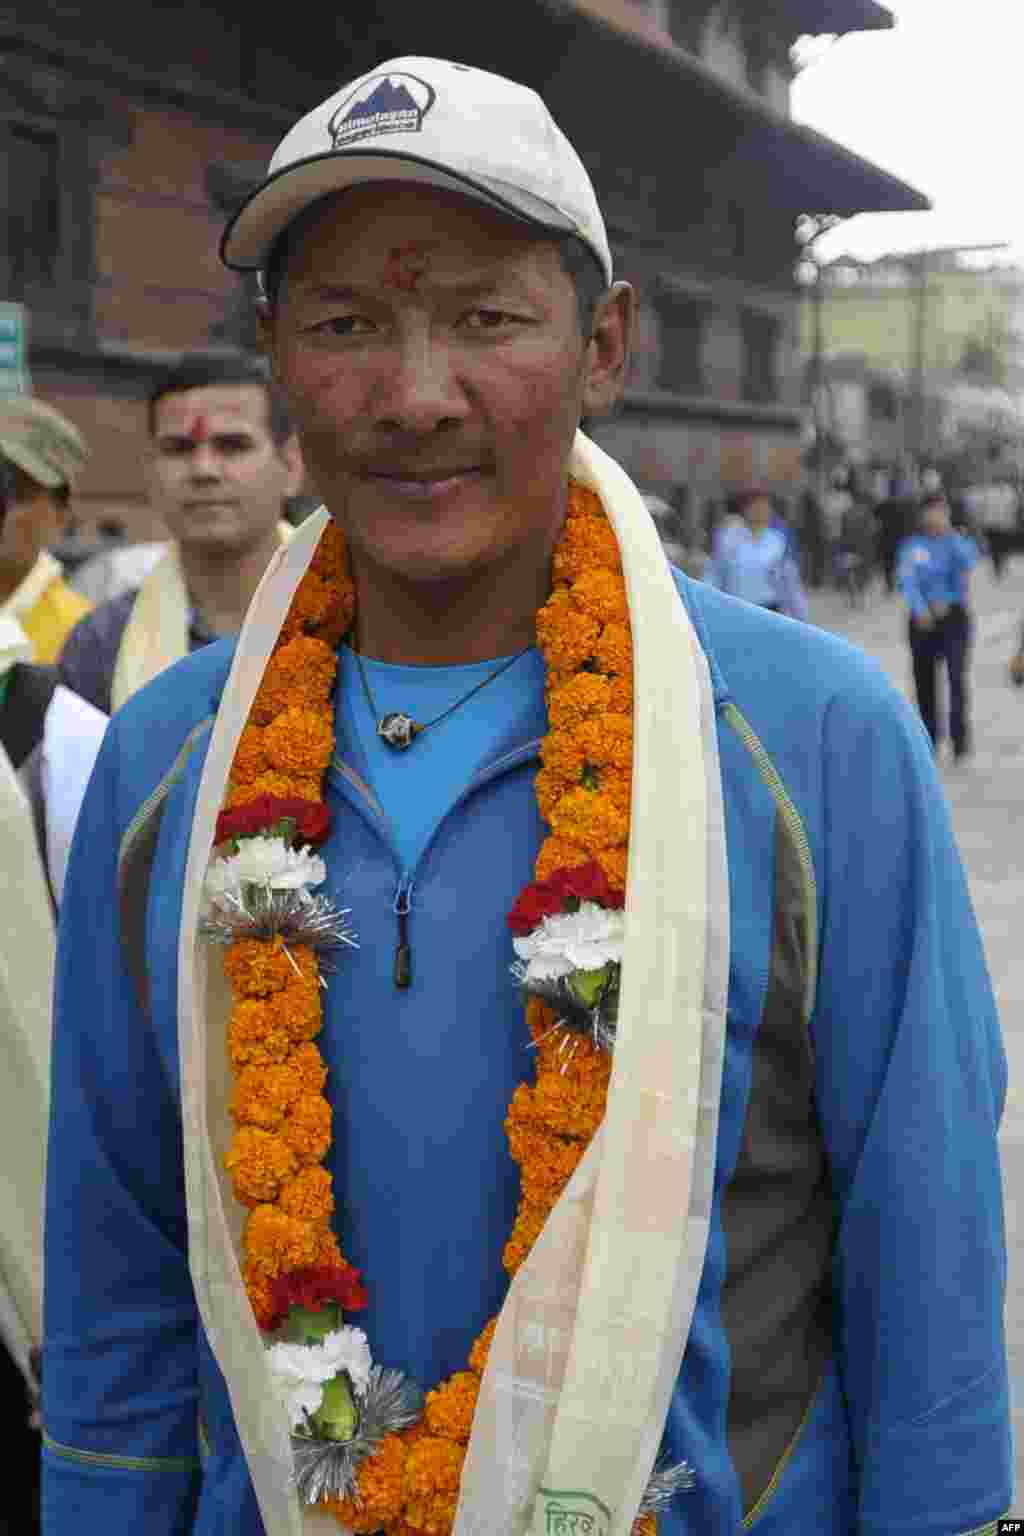 Nepalese mountaineer Phurba Tashi Sherpa, who has summitted Everest a record 21 times, takes part in the Diamond Jubilee celebrations.